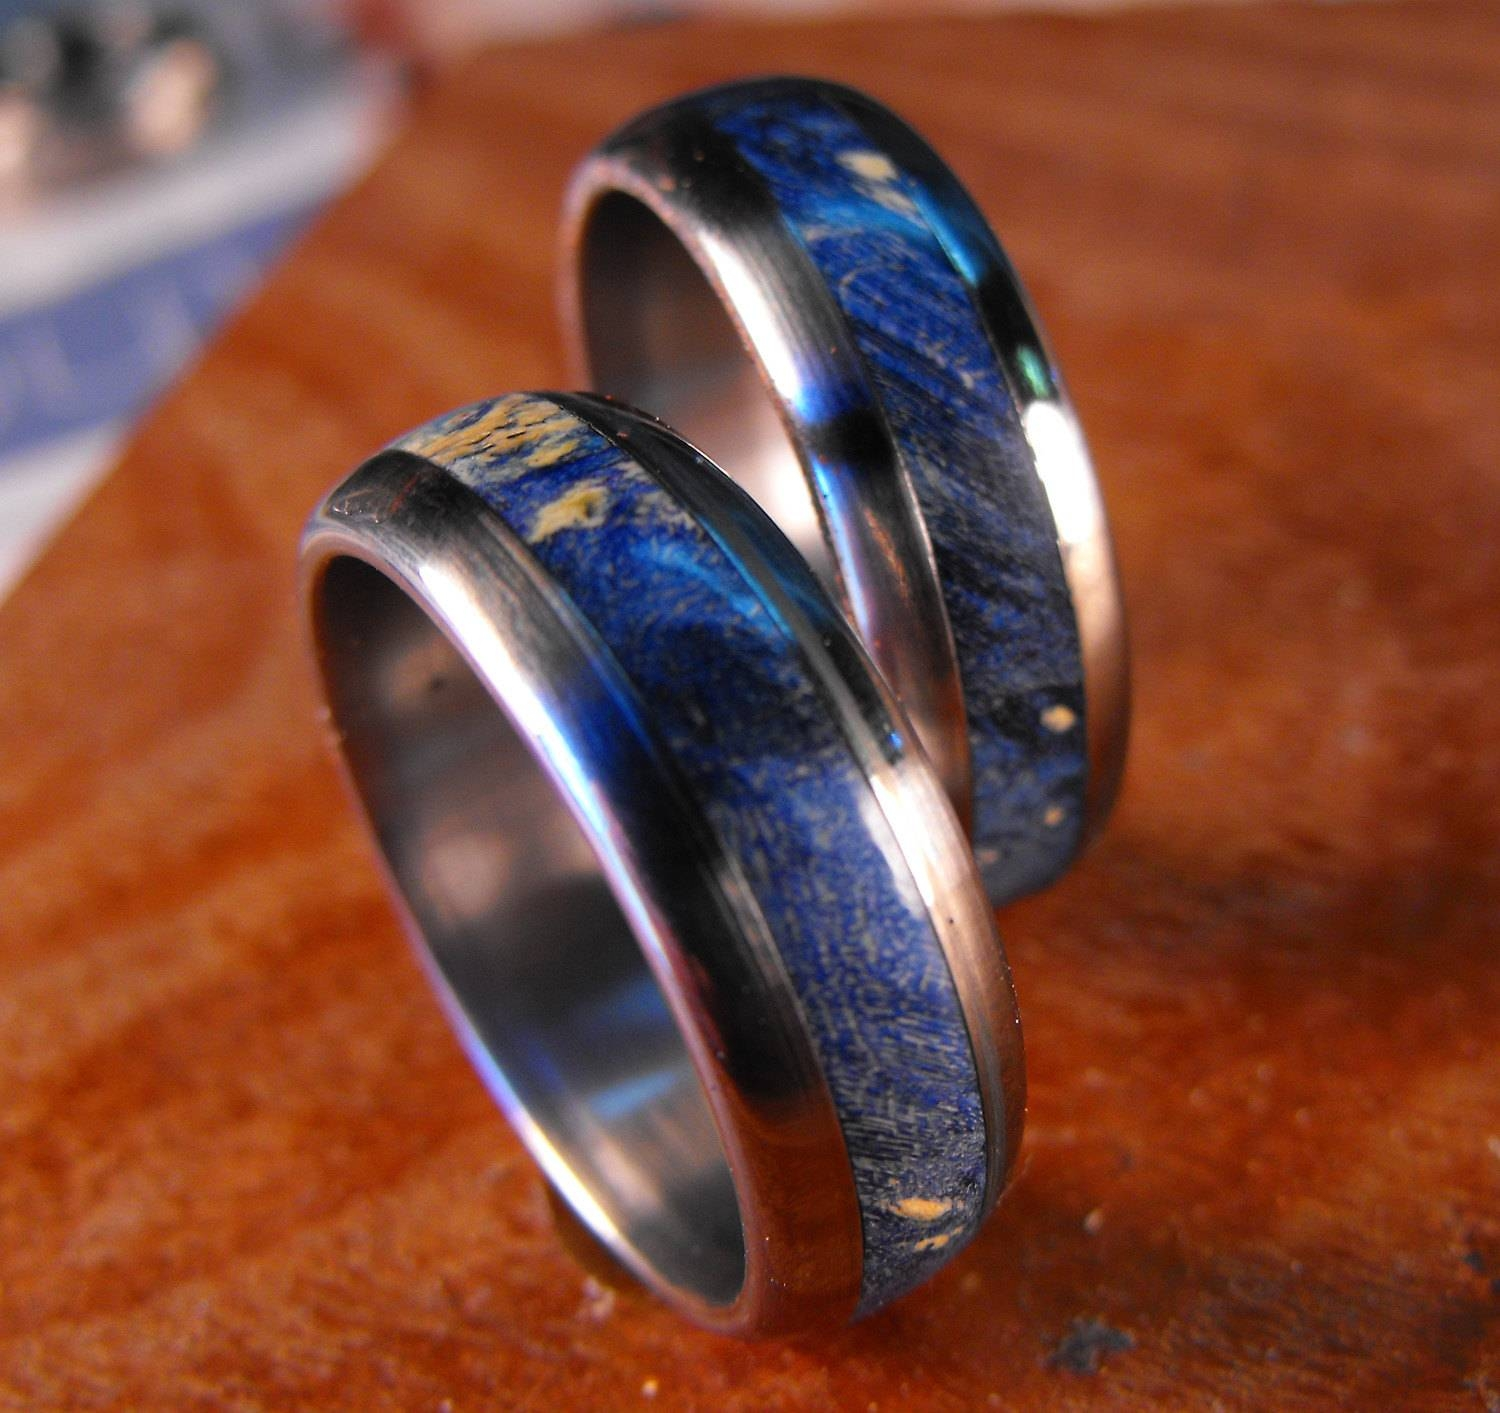 Titanium Rings Wedding Rings Wedding Ring Set His And Hers Intended For Wood Inlay Wedding Bands (Gallery 14 of 15)